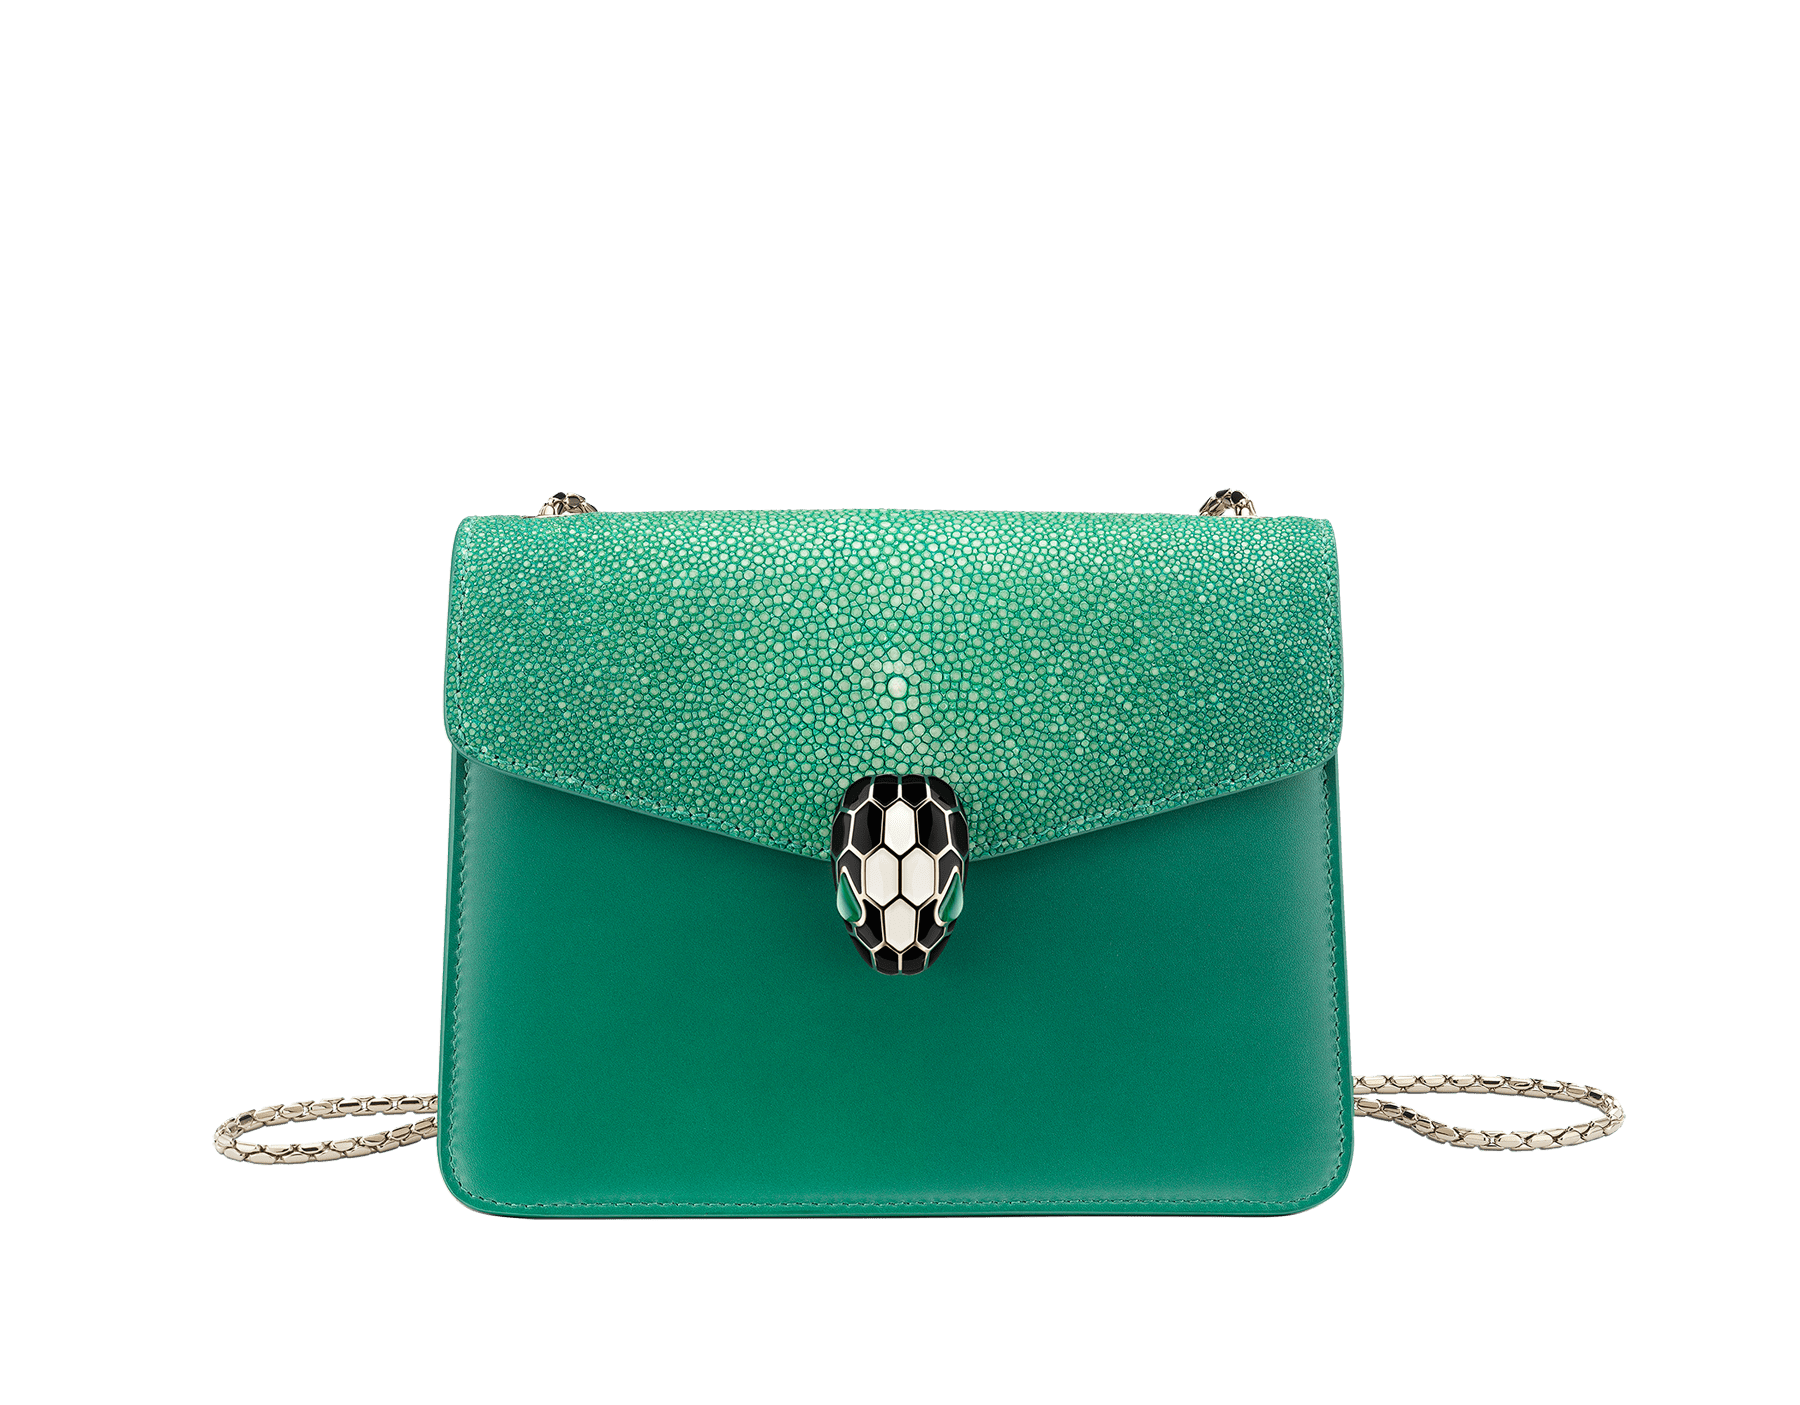 """Serpenti Forever "" crossbody bag in carmine jasper galuchat skin and calf leather. Iconic snakehead closure in light gold plated brass enriched with black and white enamel and green malachite eyes 422-Ga image 2"